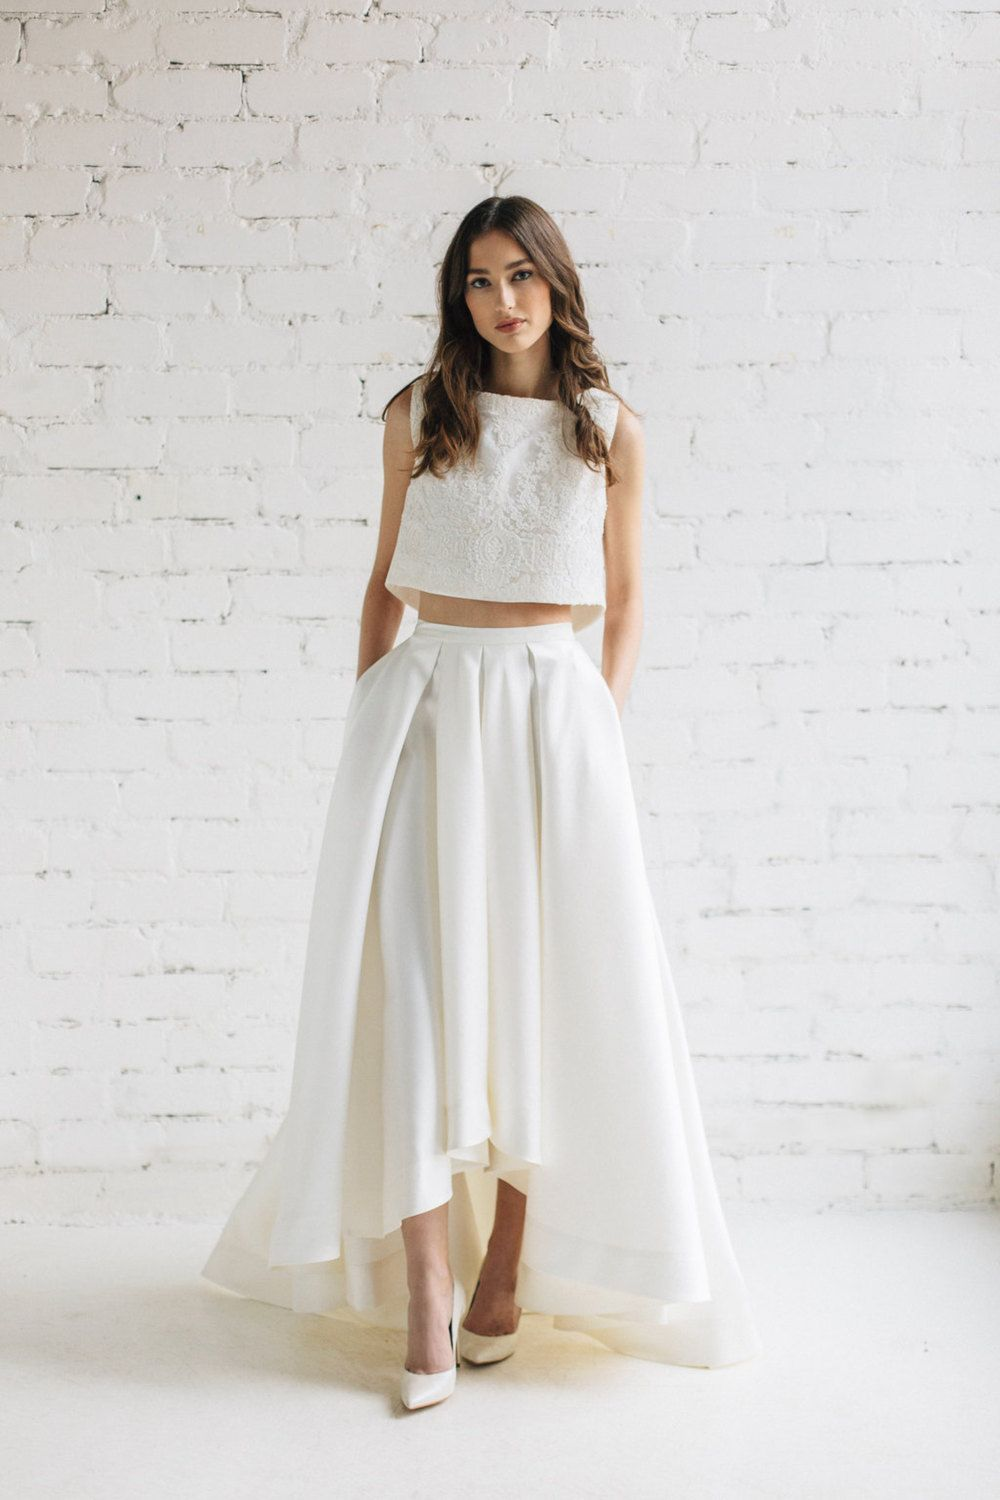 High low wedding skirt bridal separates ivory wedding skirt with